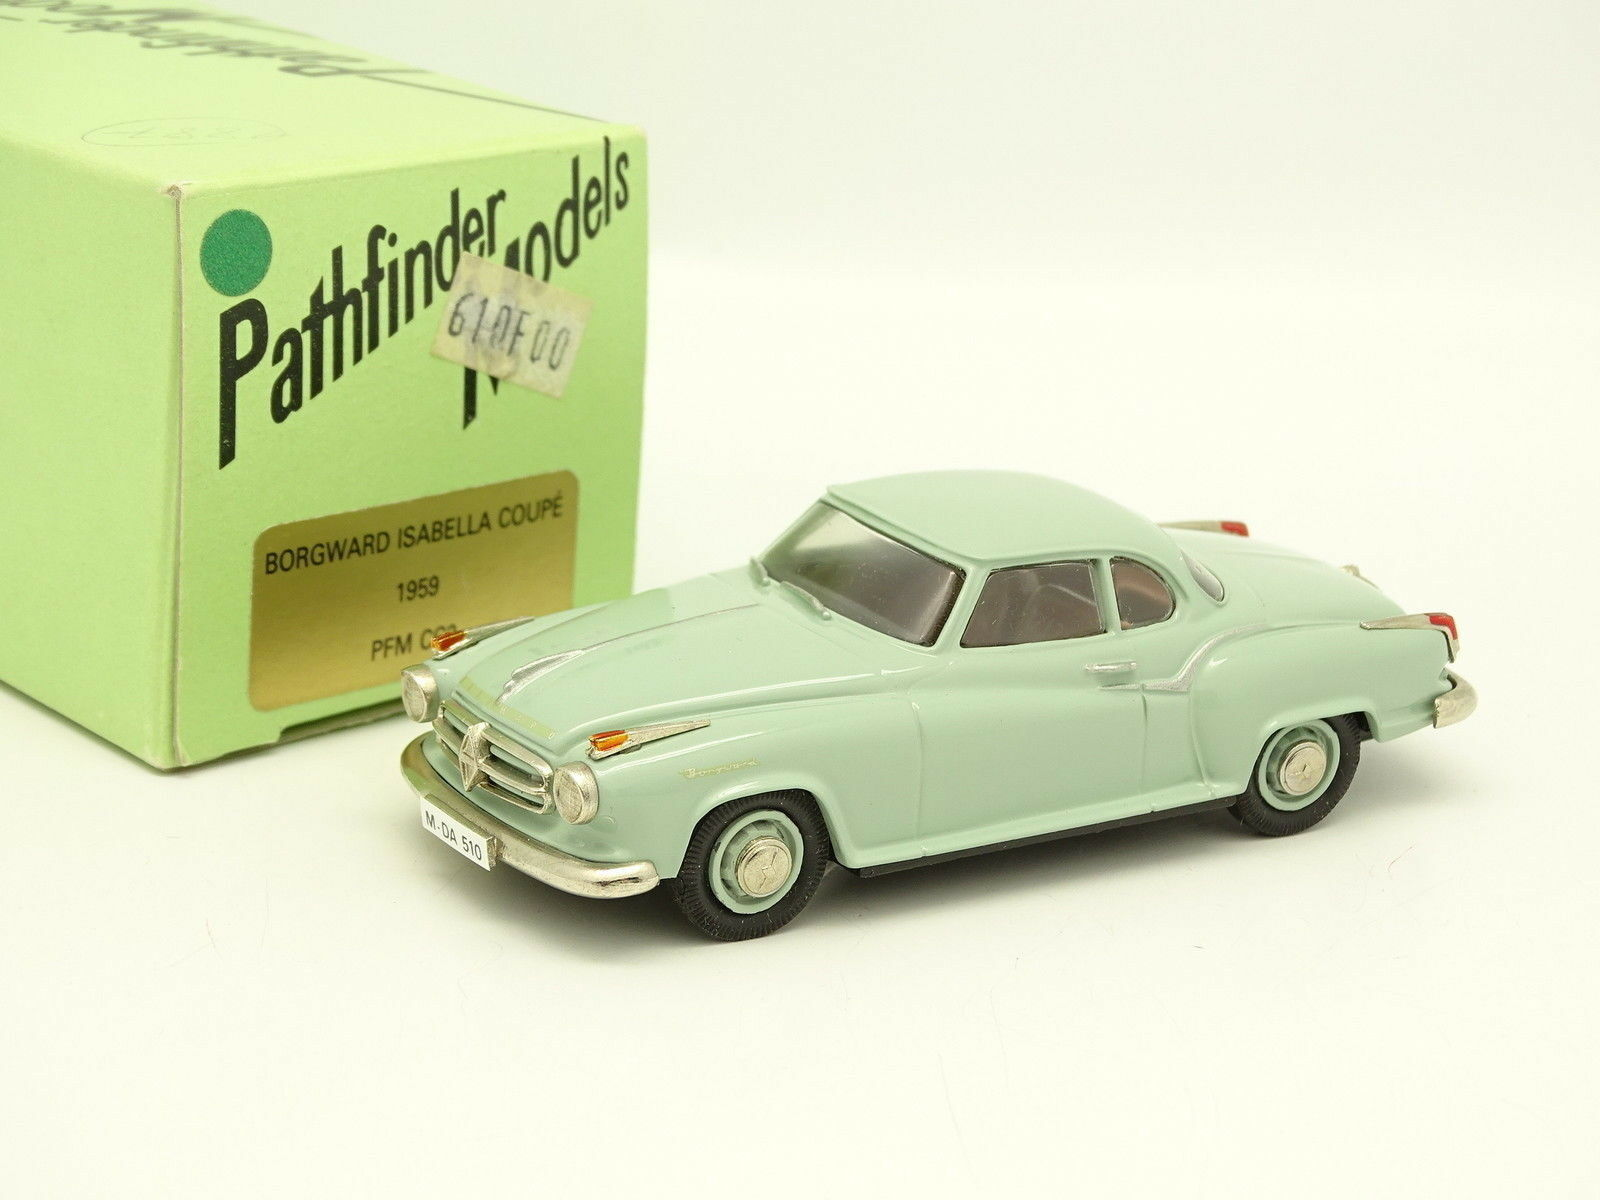 Pathfinder Models 1 43 - Borgward Isabella Coupé 1959